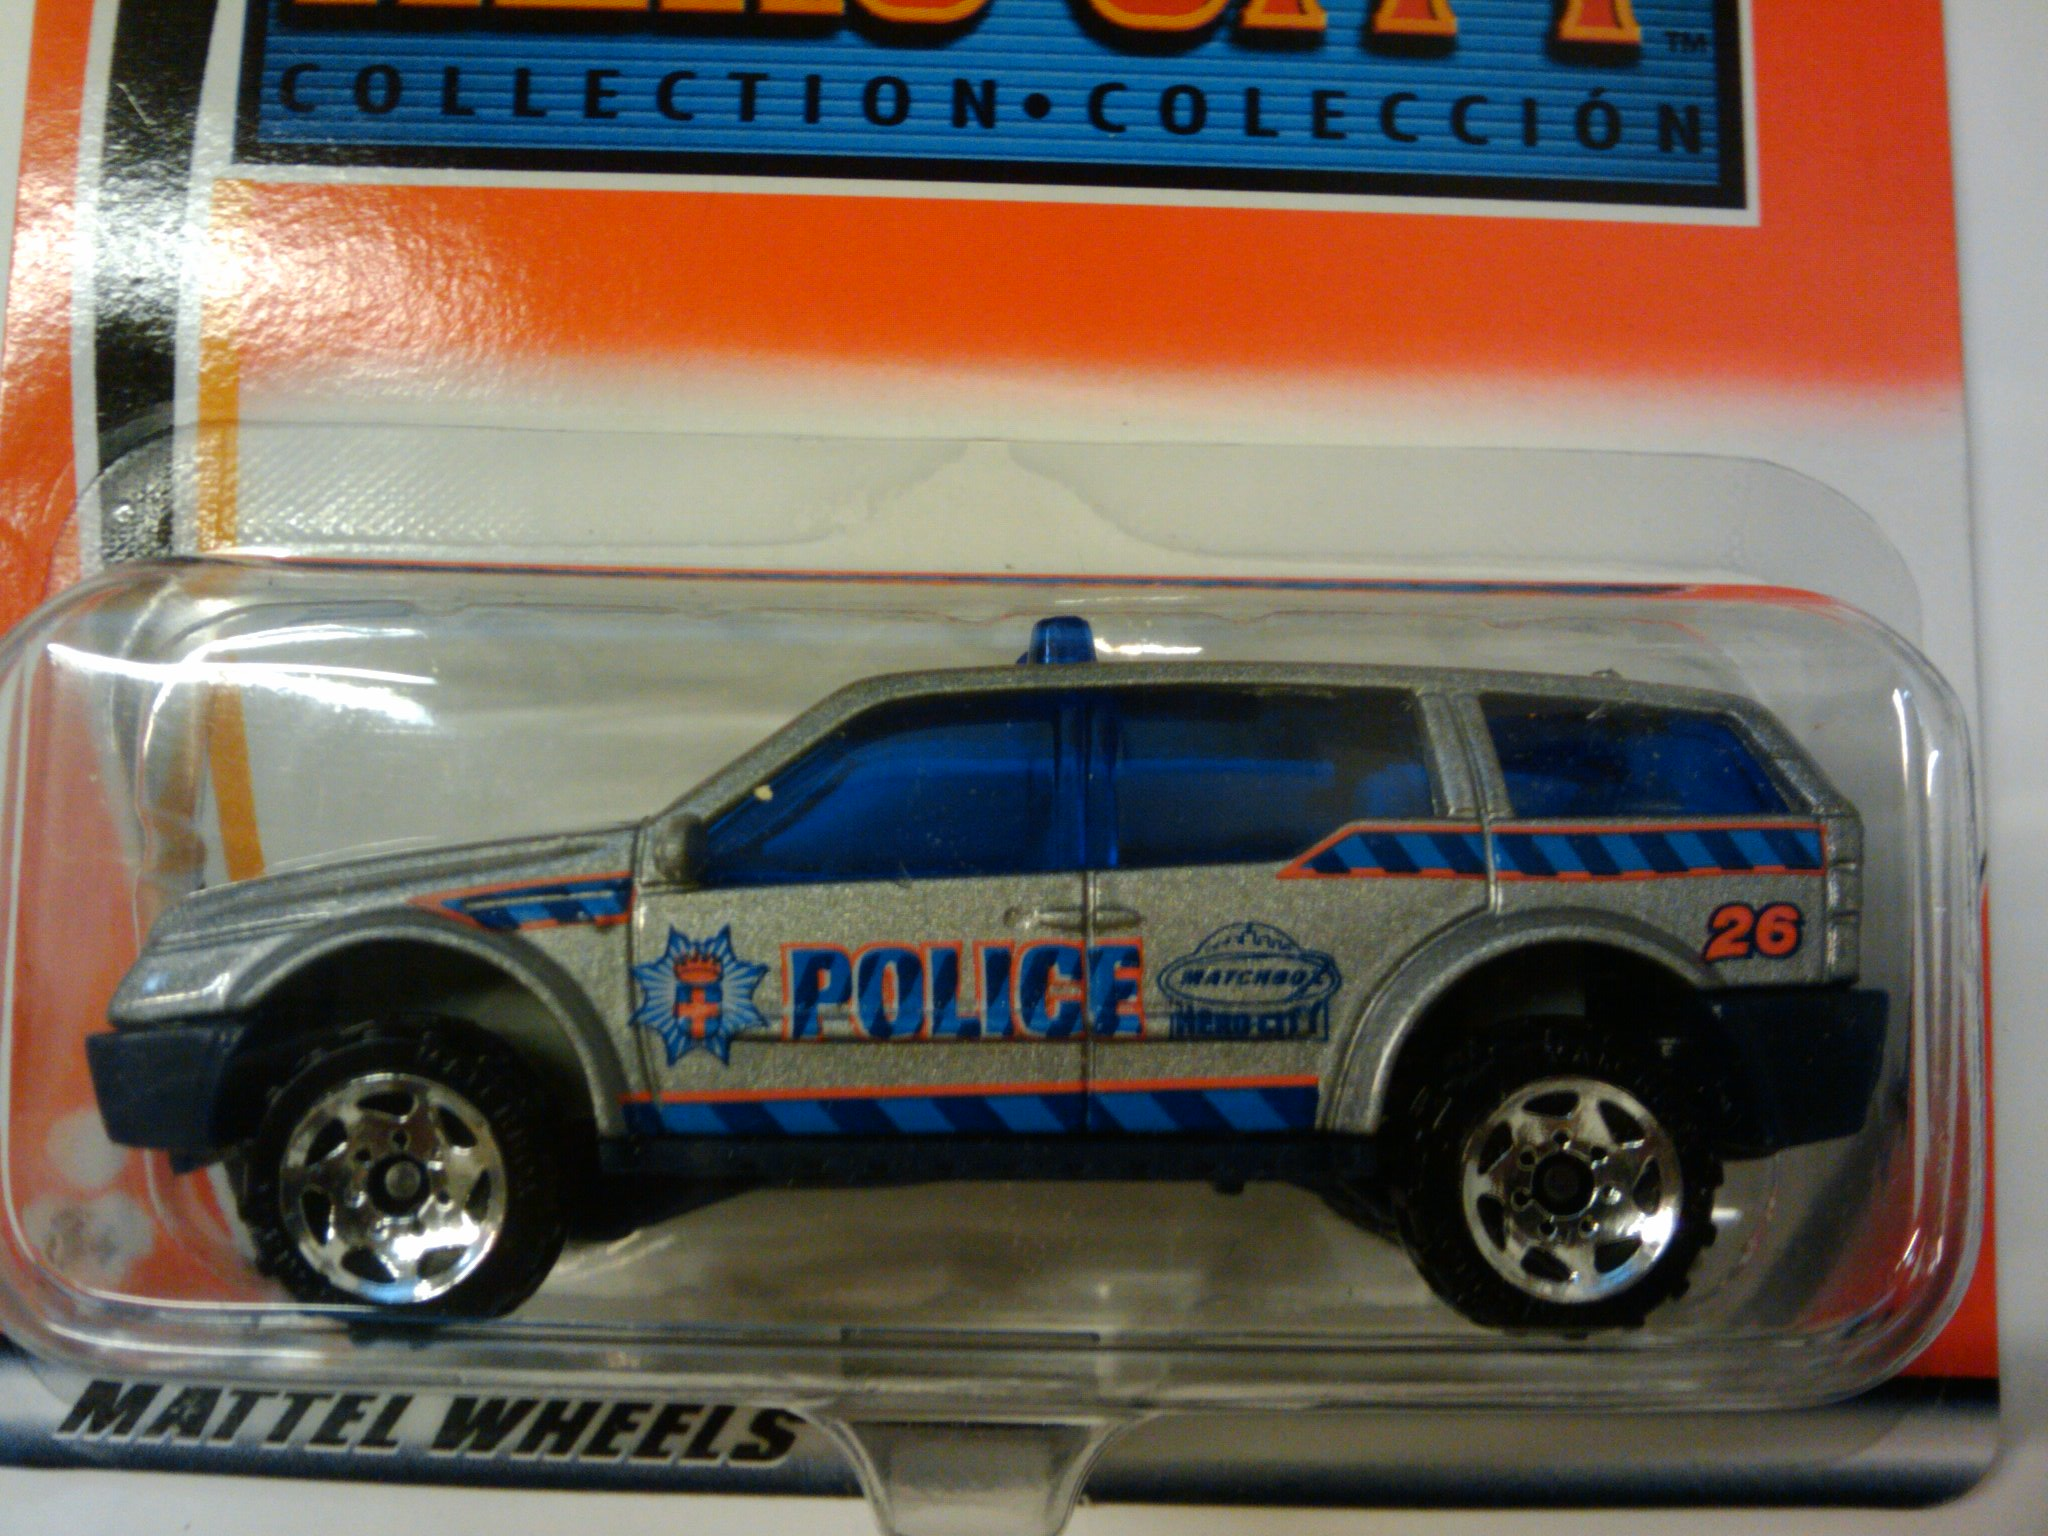 Police SUV - Matchbox Cars